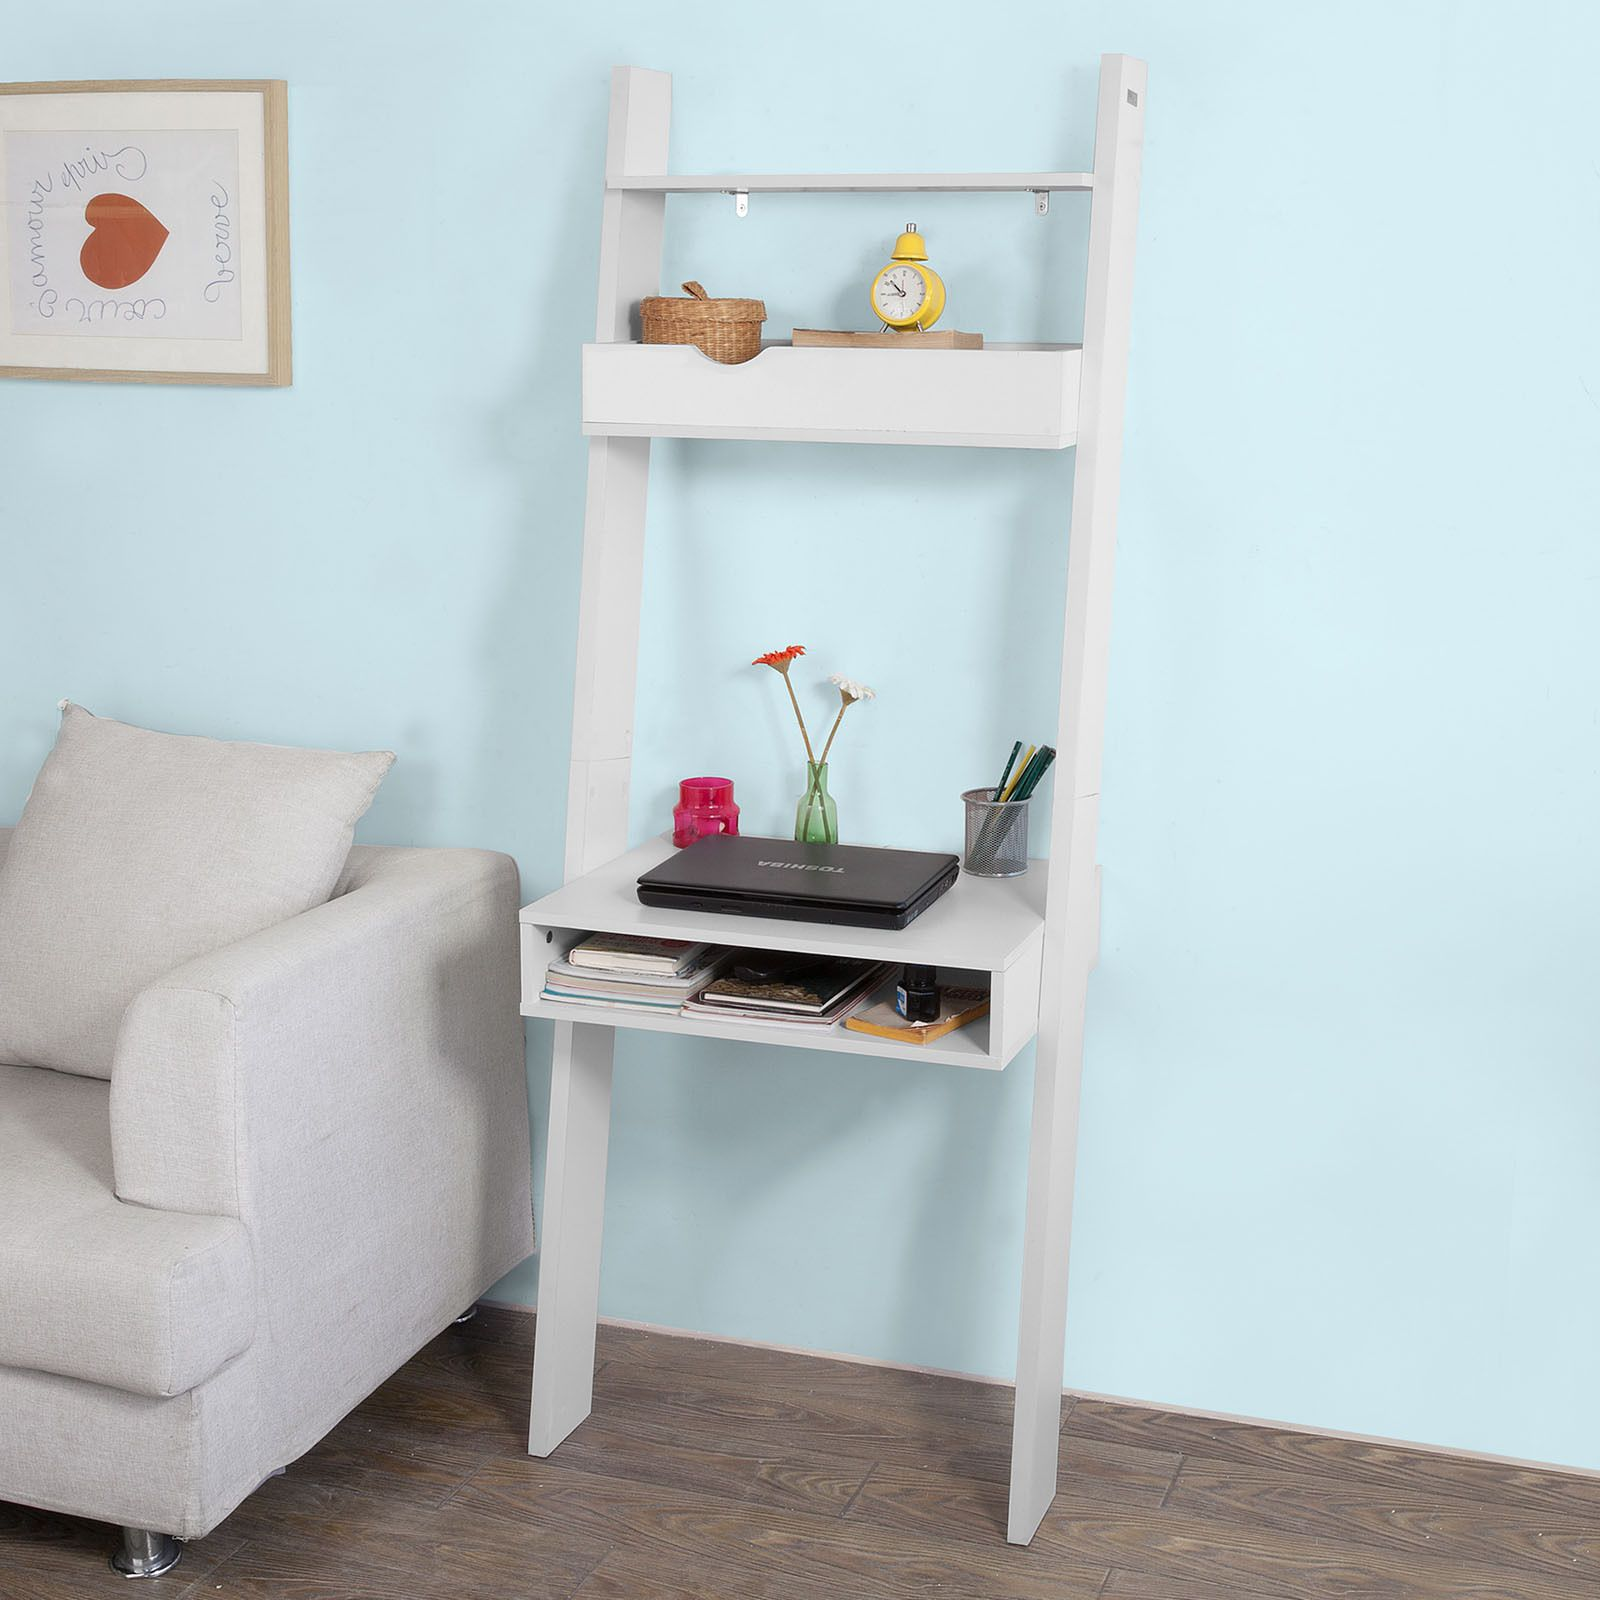 SoBuy Wall Storage Shelving Unit with Drawer